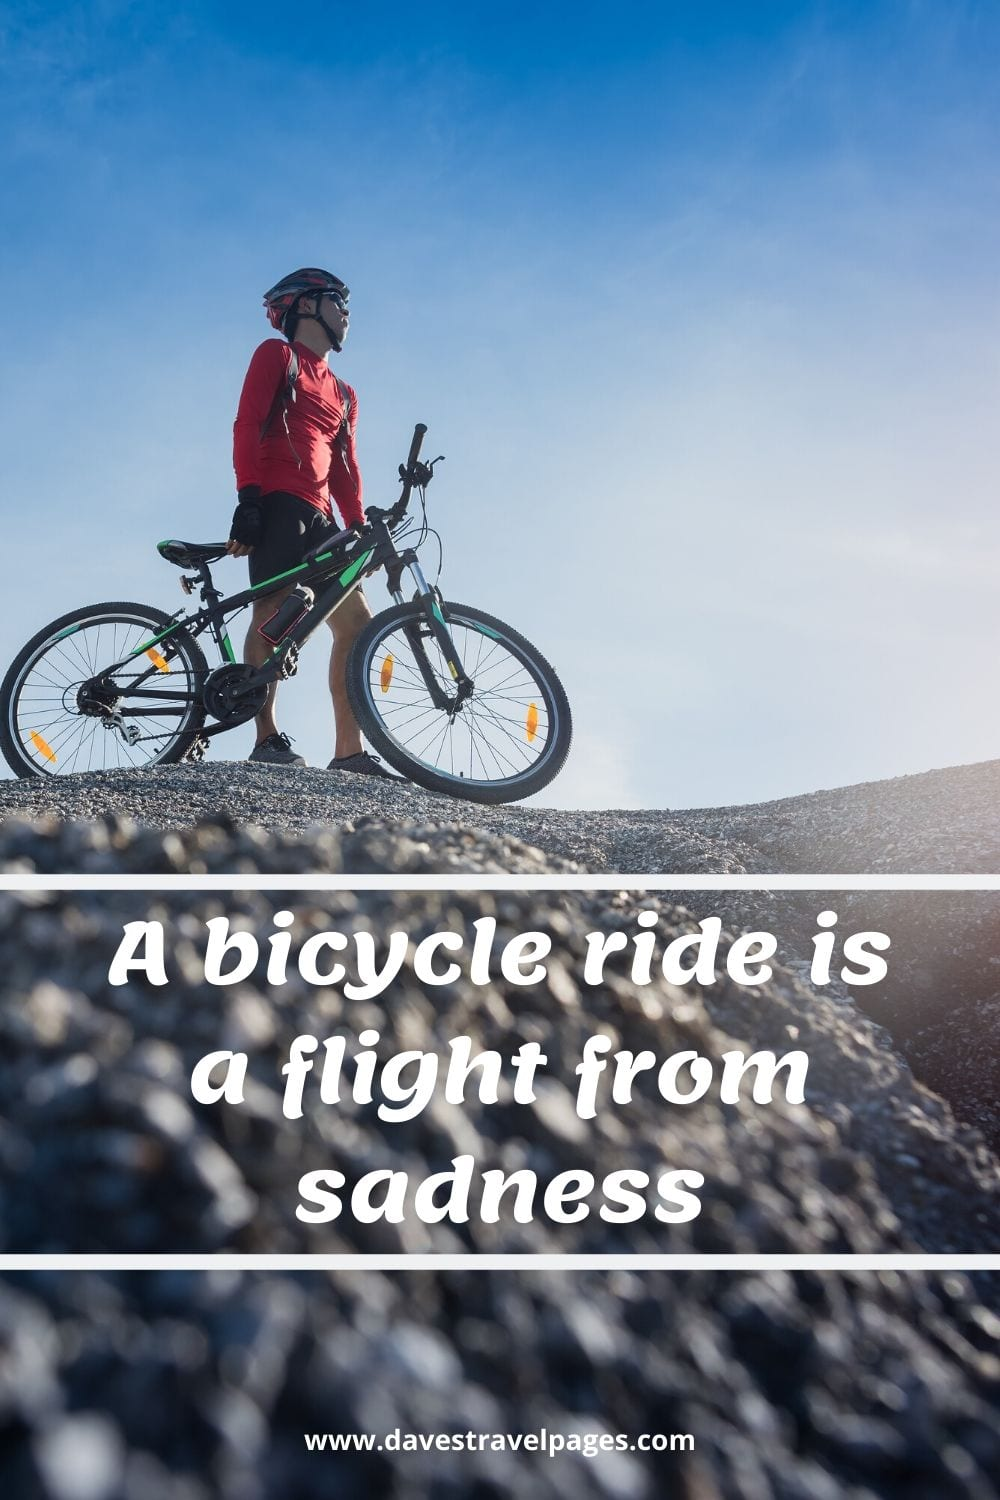 Bicycle quotation - A bicycle ride is a flight from sadness